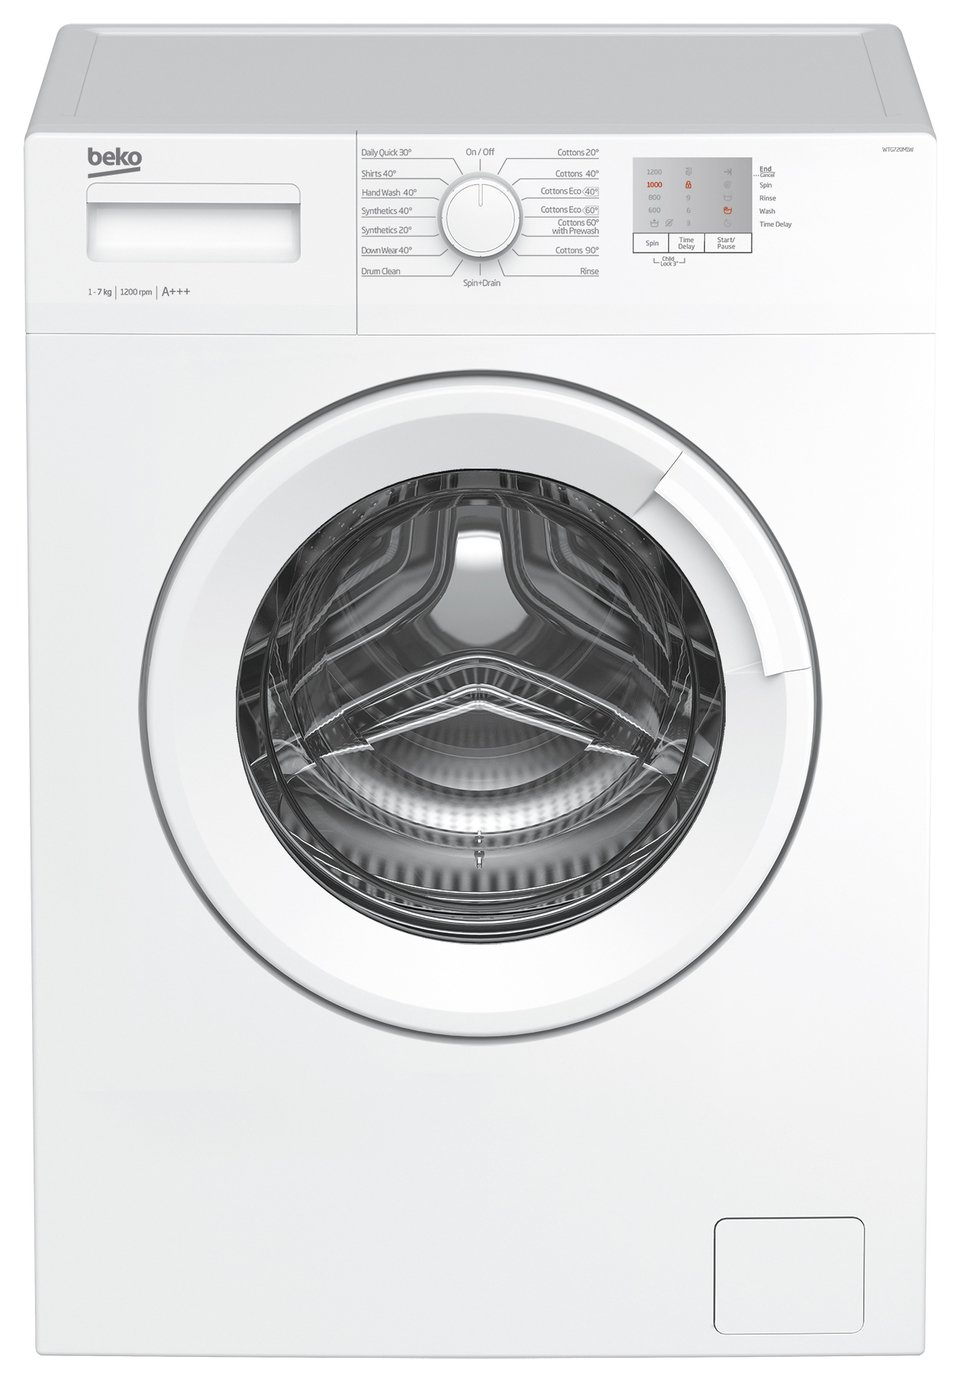 Beko WTG720M1W 7KG 1200 Spin Washing Machine - White Best Price, Cheapest Prices